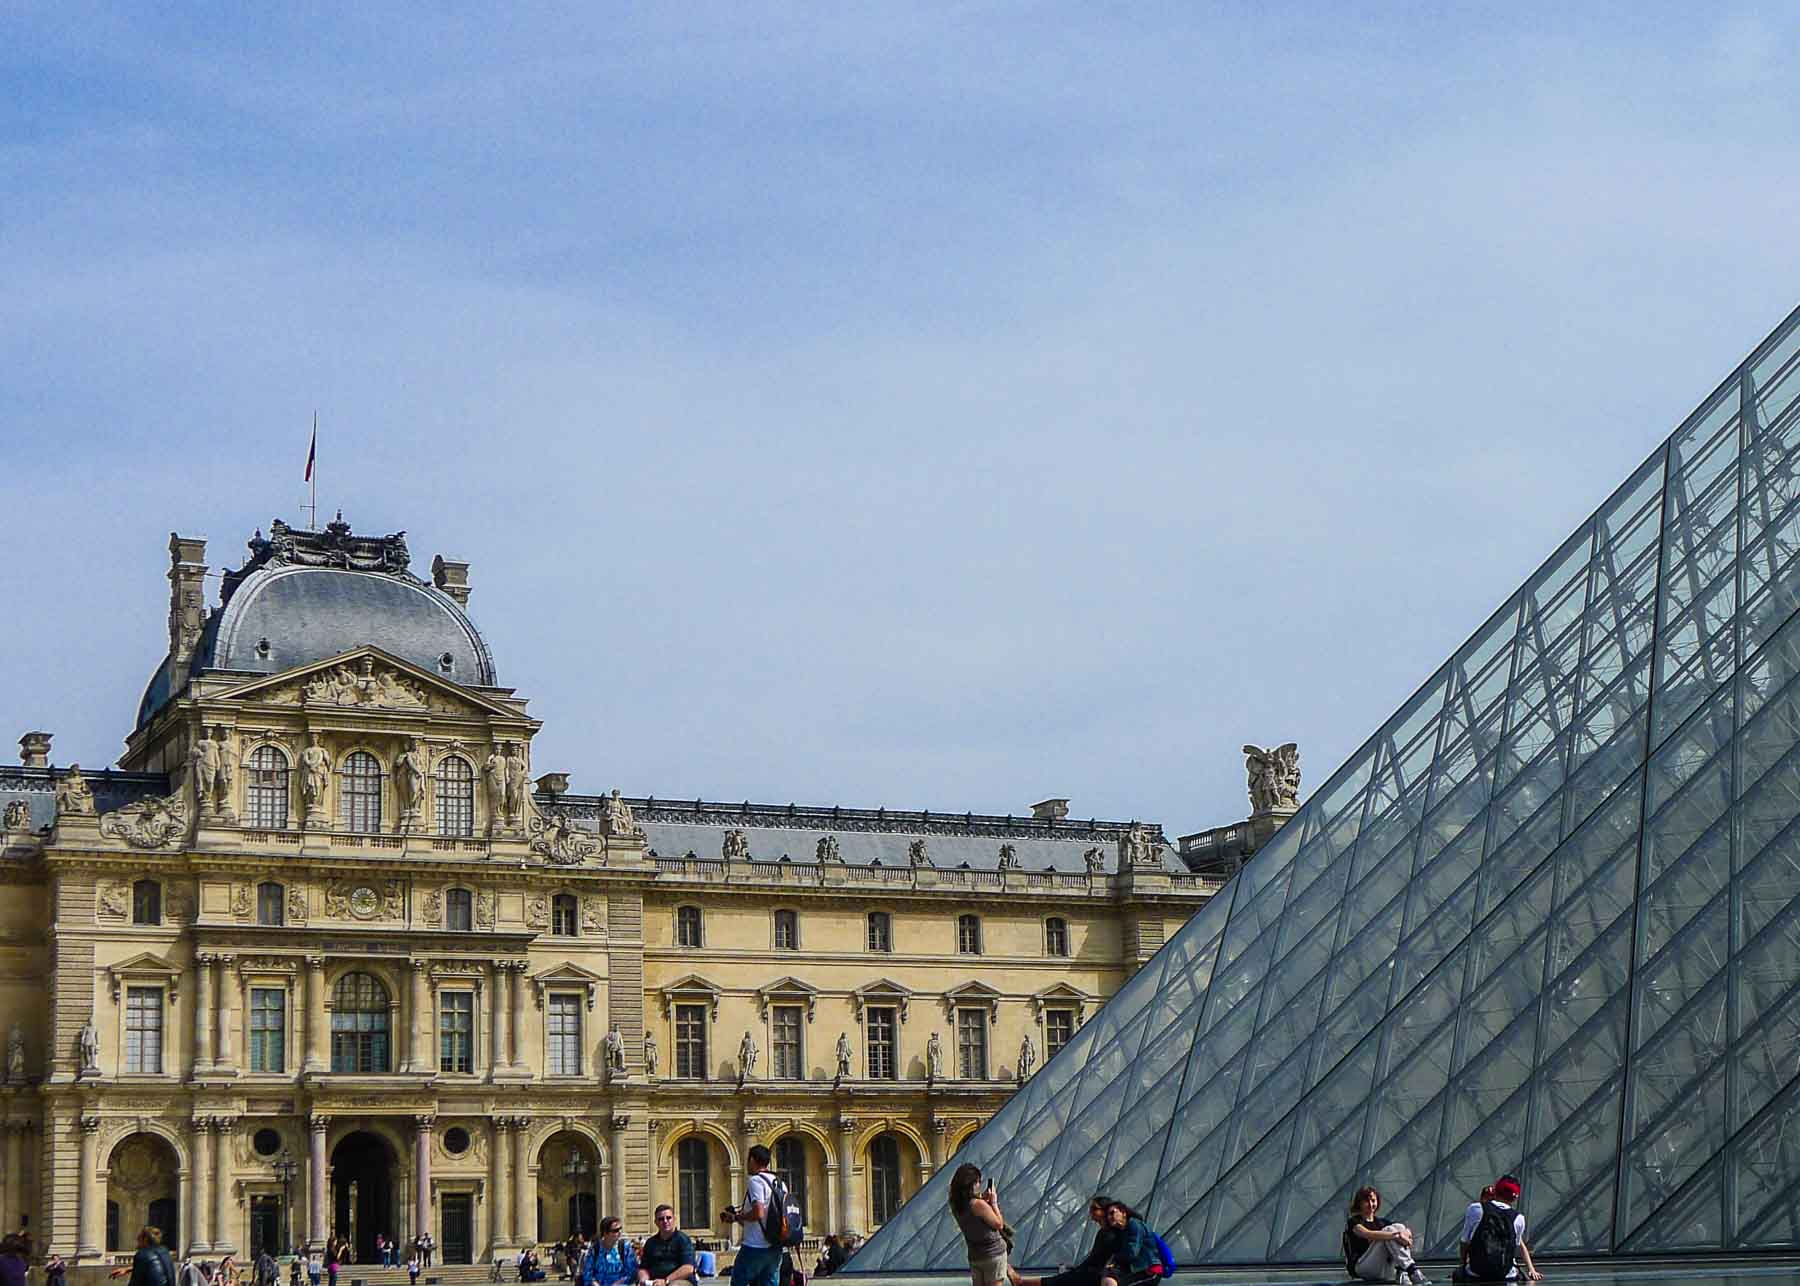 The pyramid at the Louvre.